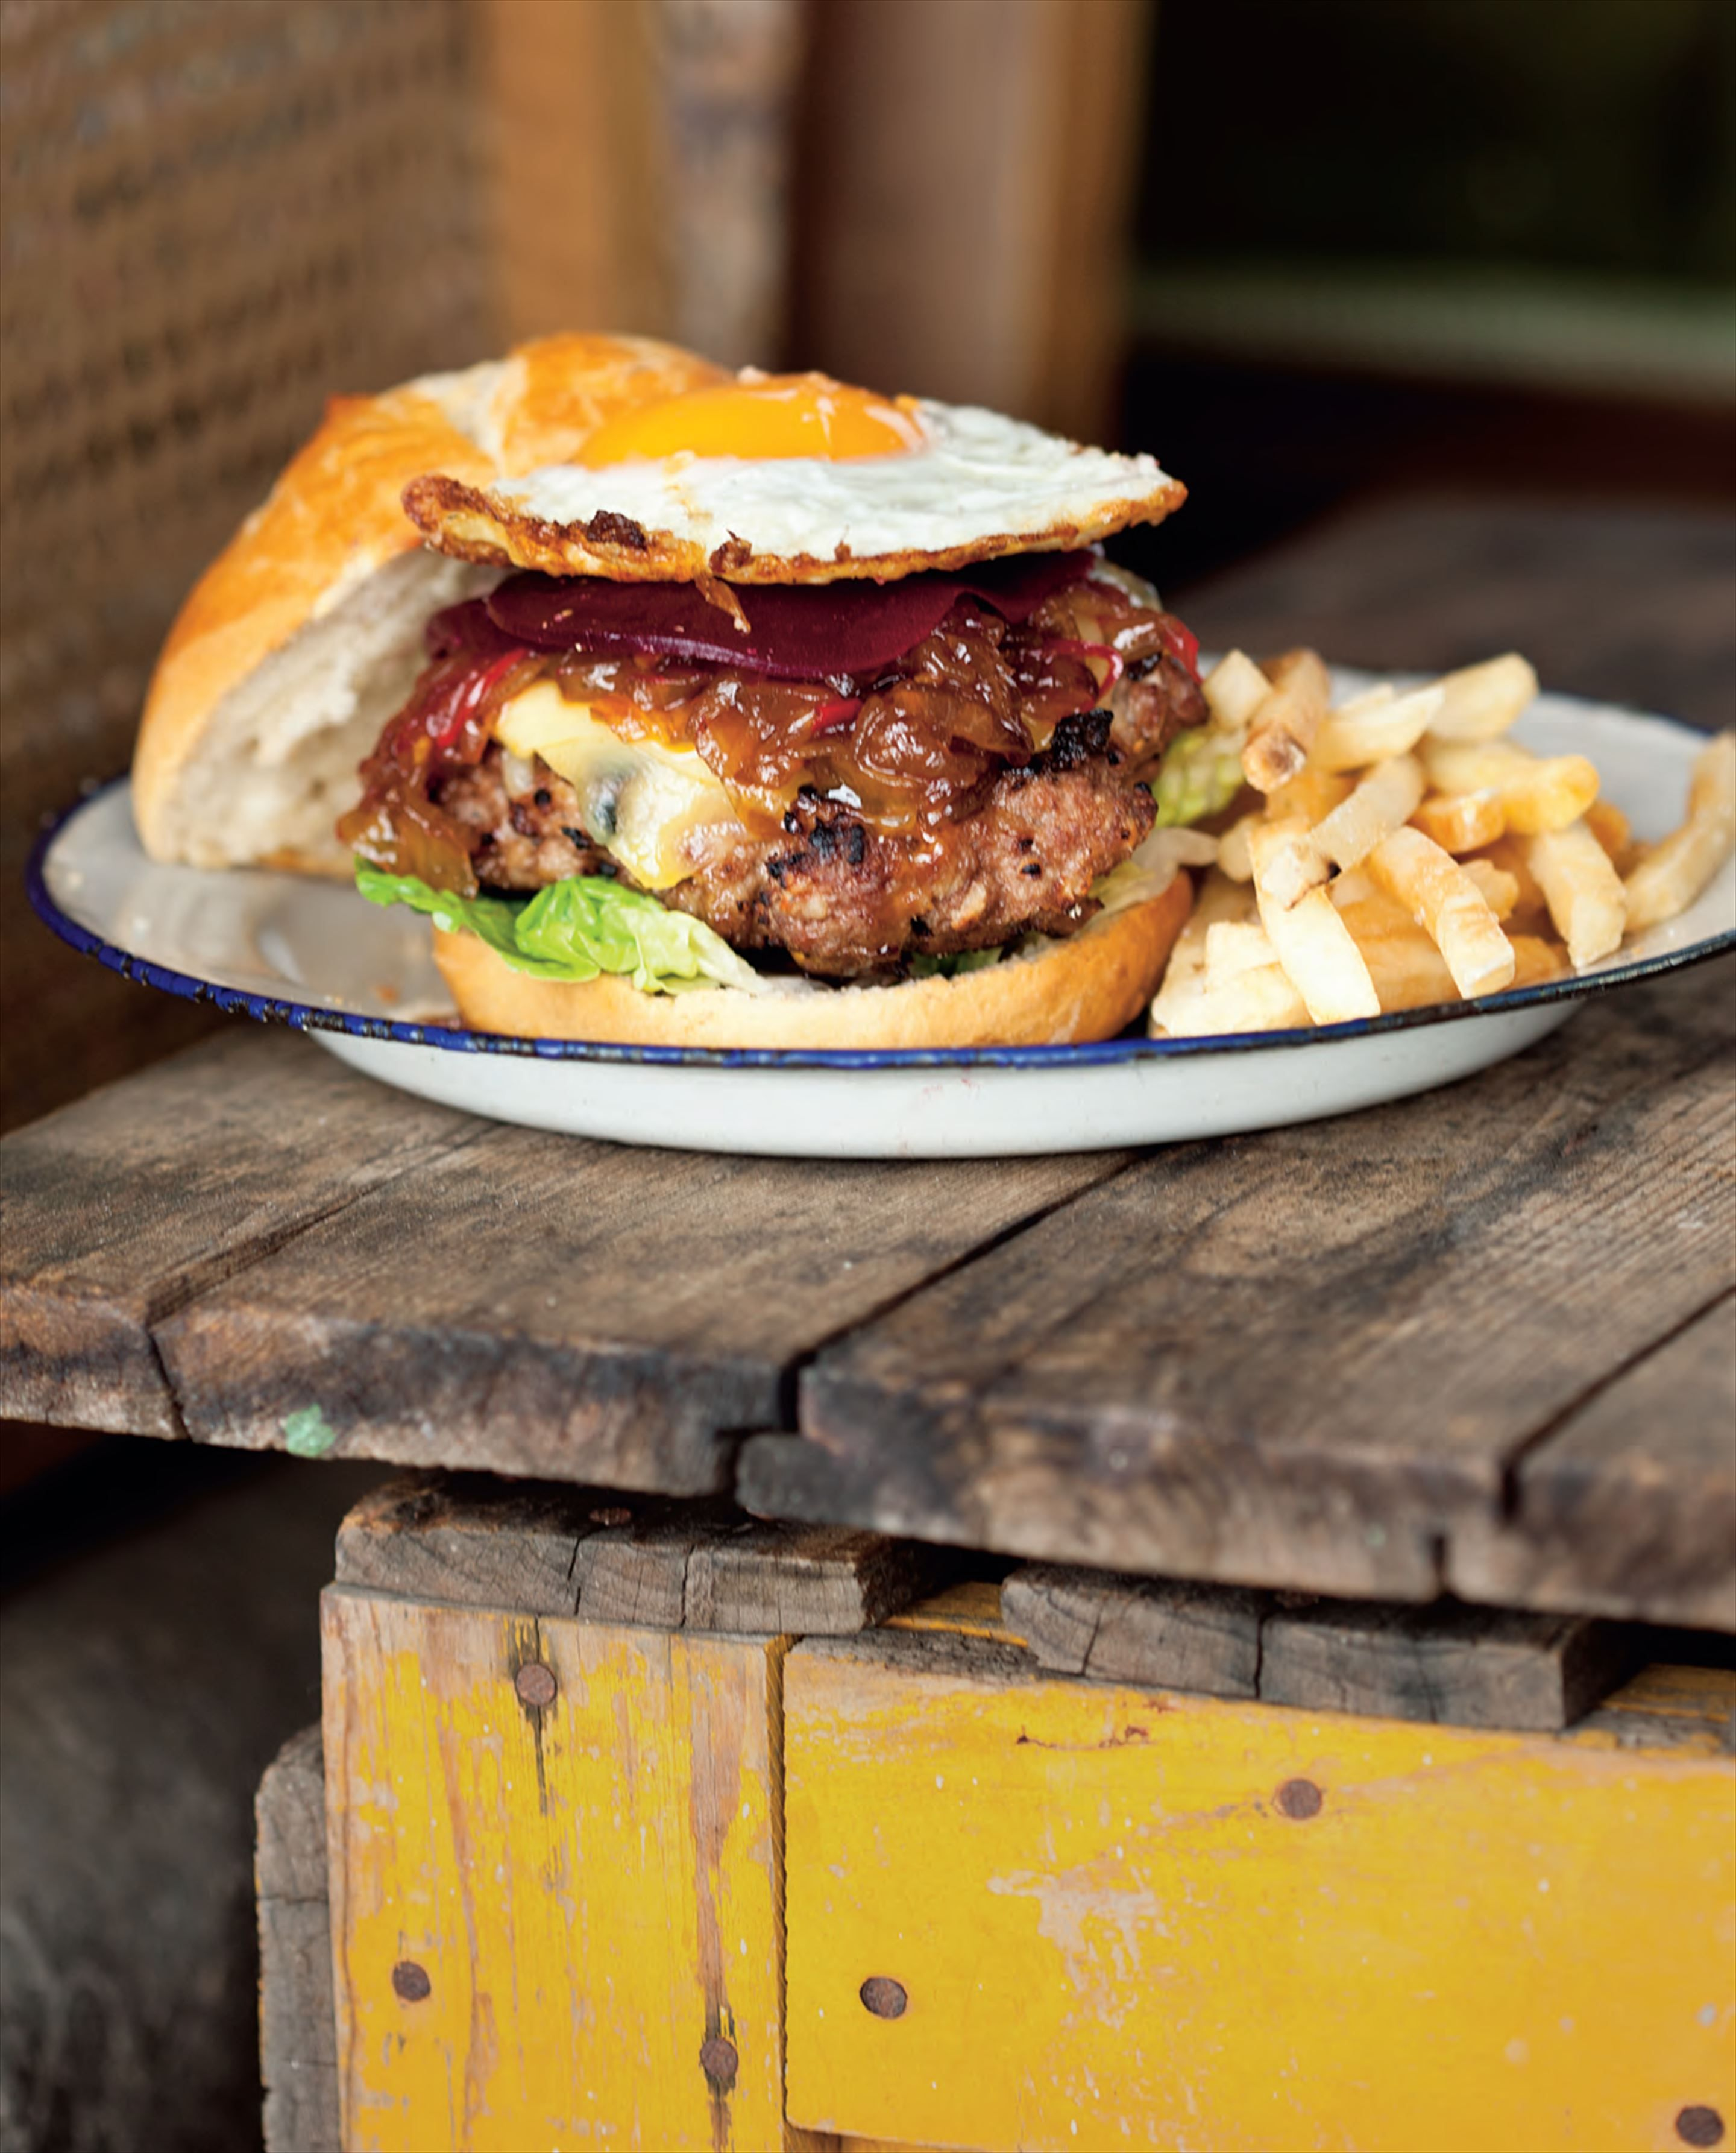 Aussie damper Wagyu burger recipe from Have You Eaten by Billy Law | Cooked